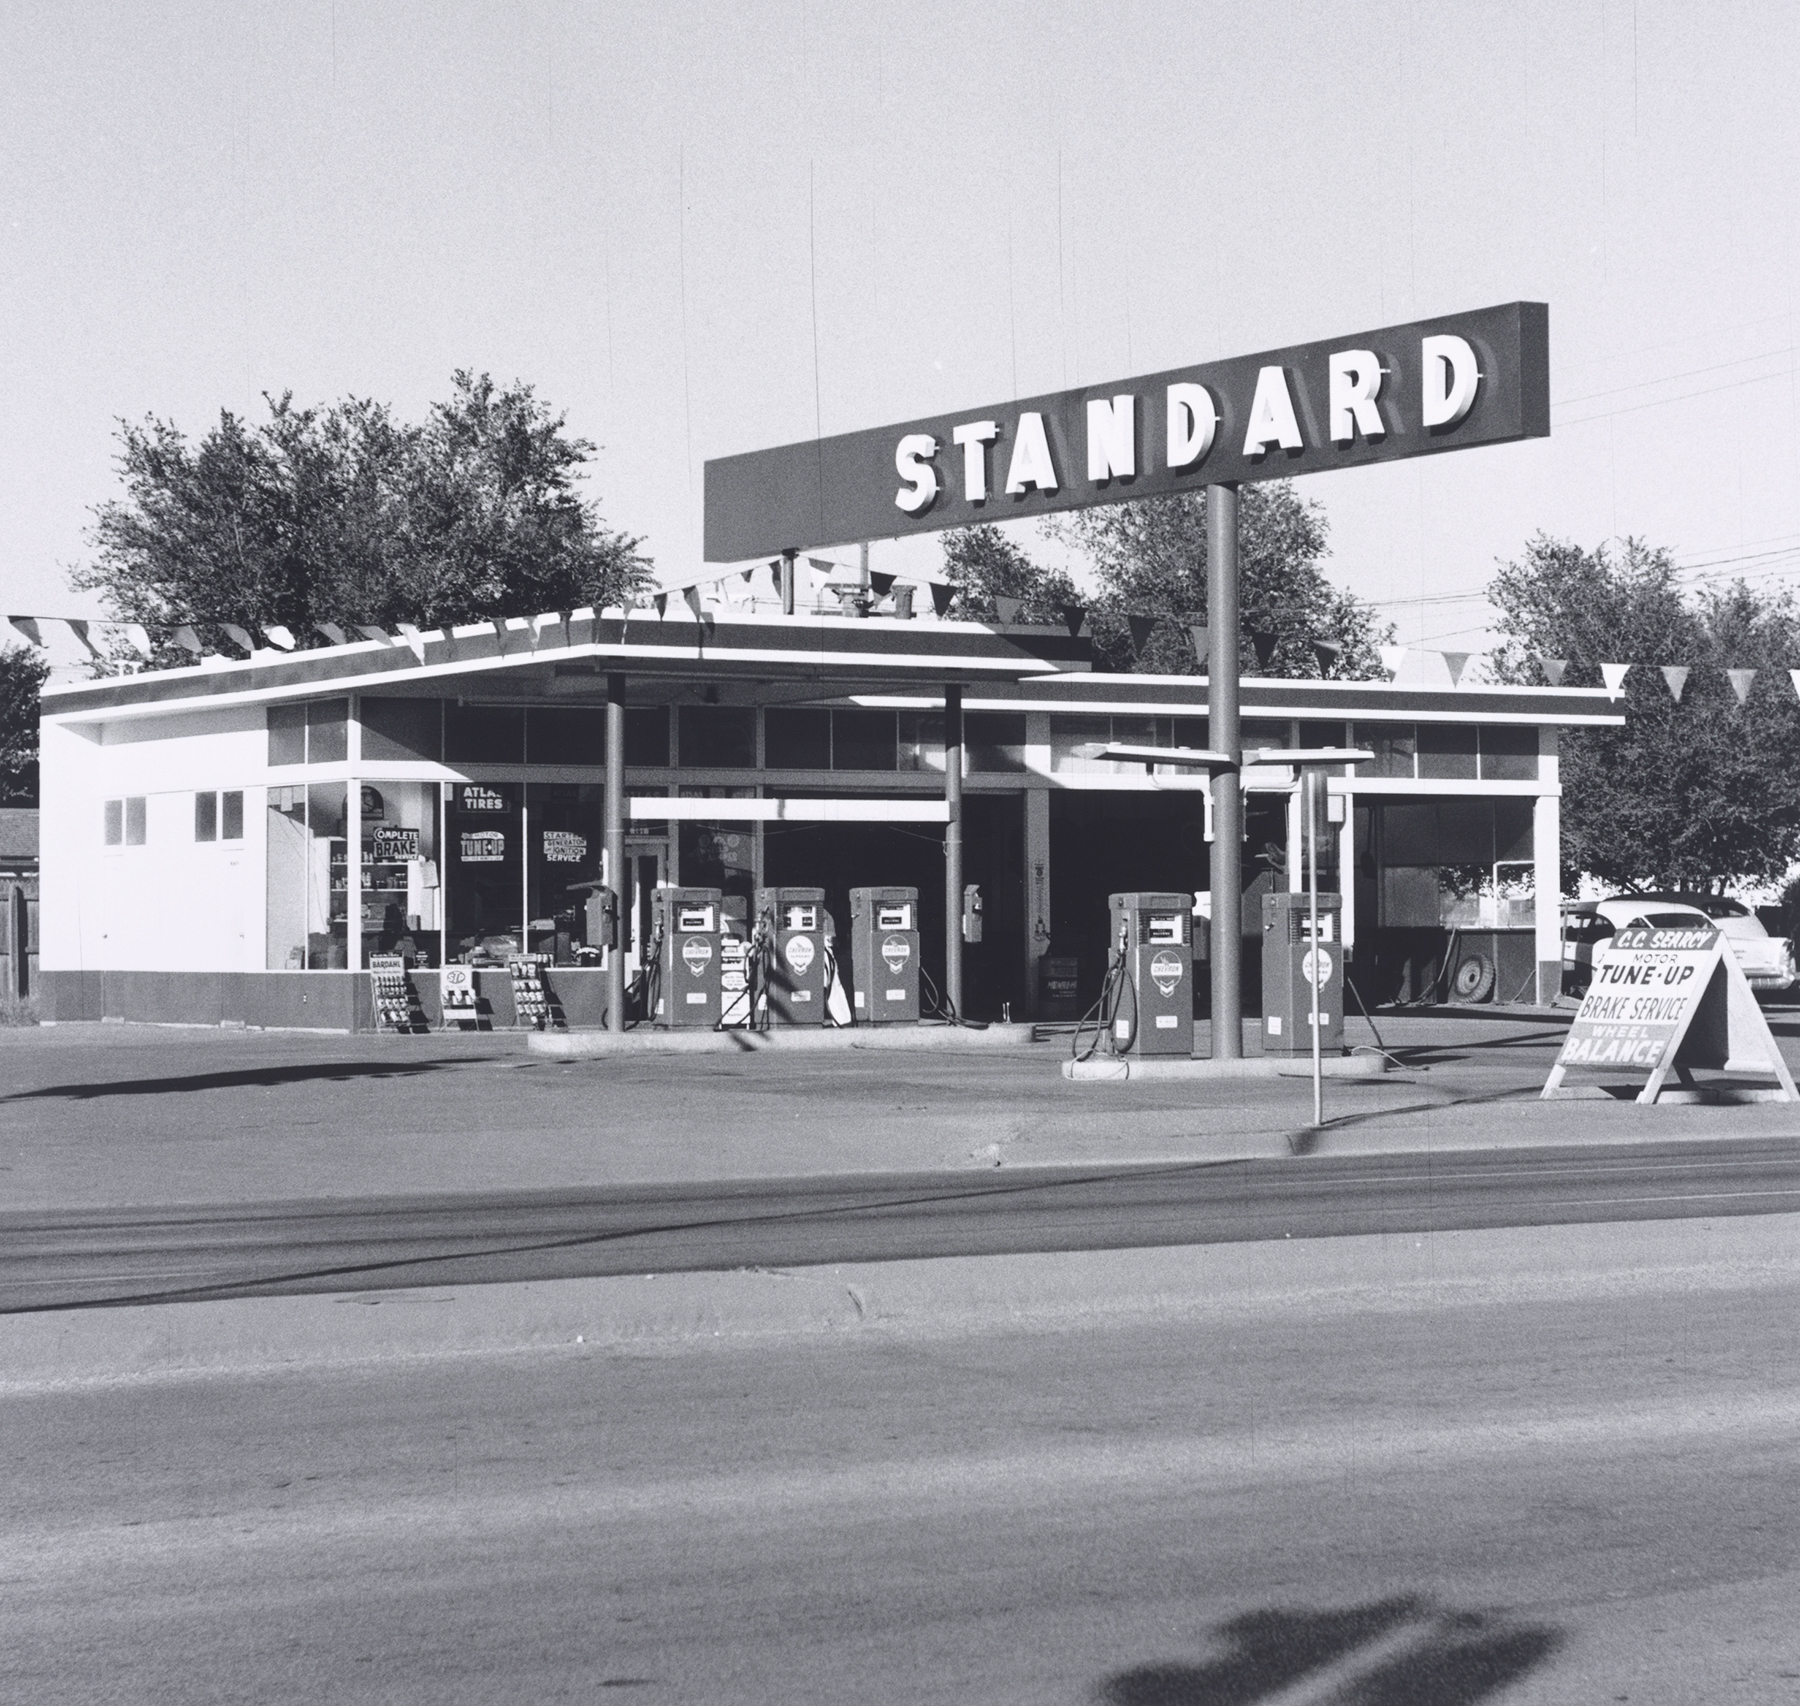 Ed Ruscha. Standard Station, Amarillo, Texas, 1962 Gelatin silver print. 4 15/16 x 5 1/16 (12.5 x 12.9 cm) Whitney Museum of American Art, New York, Purchase with funds from The Leonard and Evelyn Lauder Foundation, and Diane and Thomas Tuft